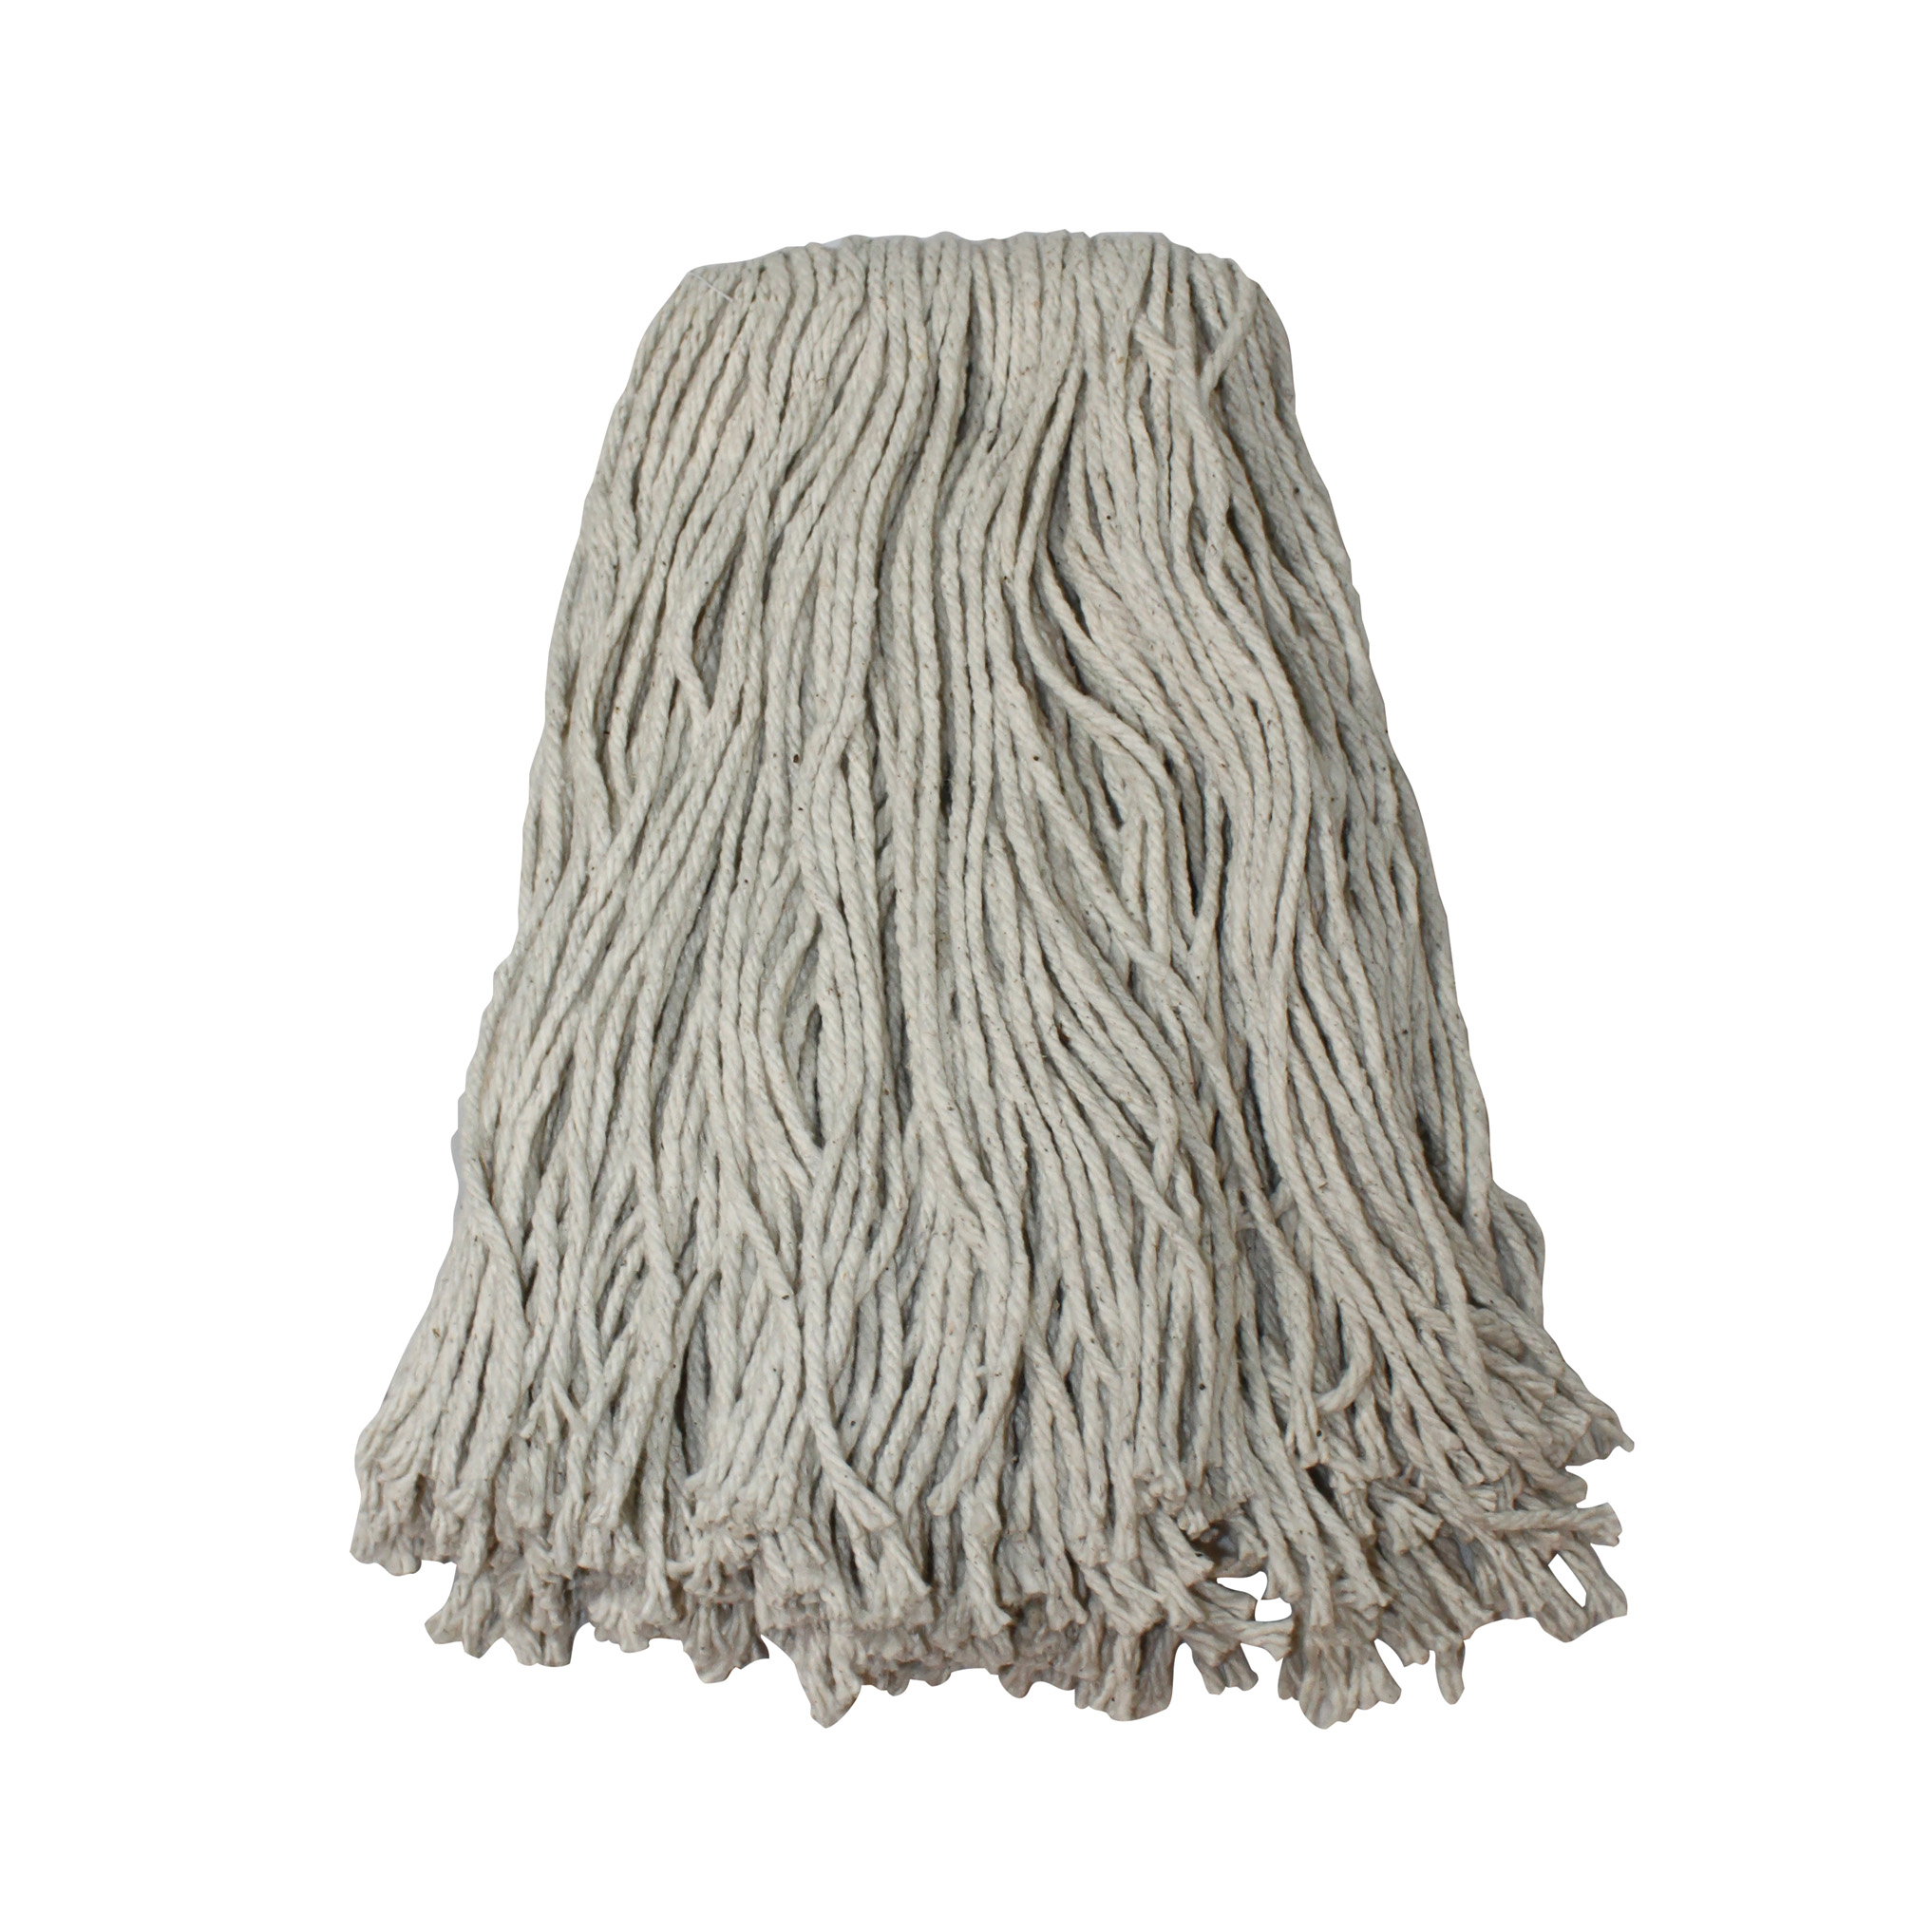 Impact Products S12120 wet mop head